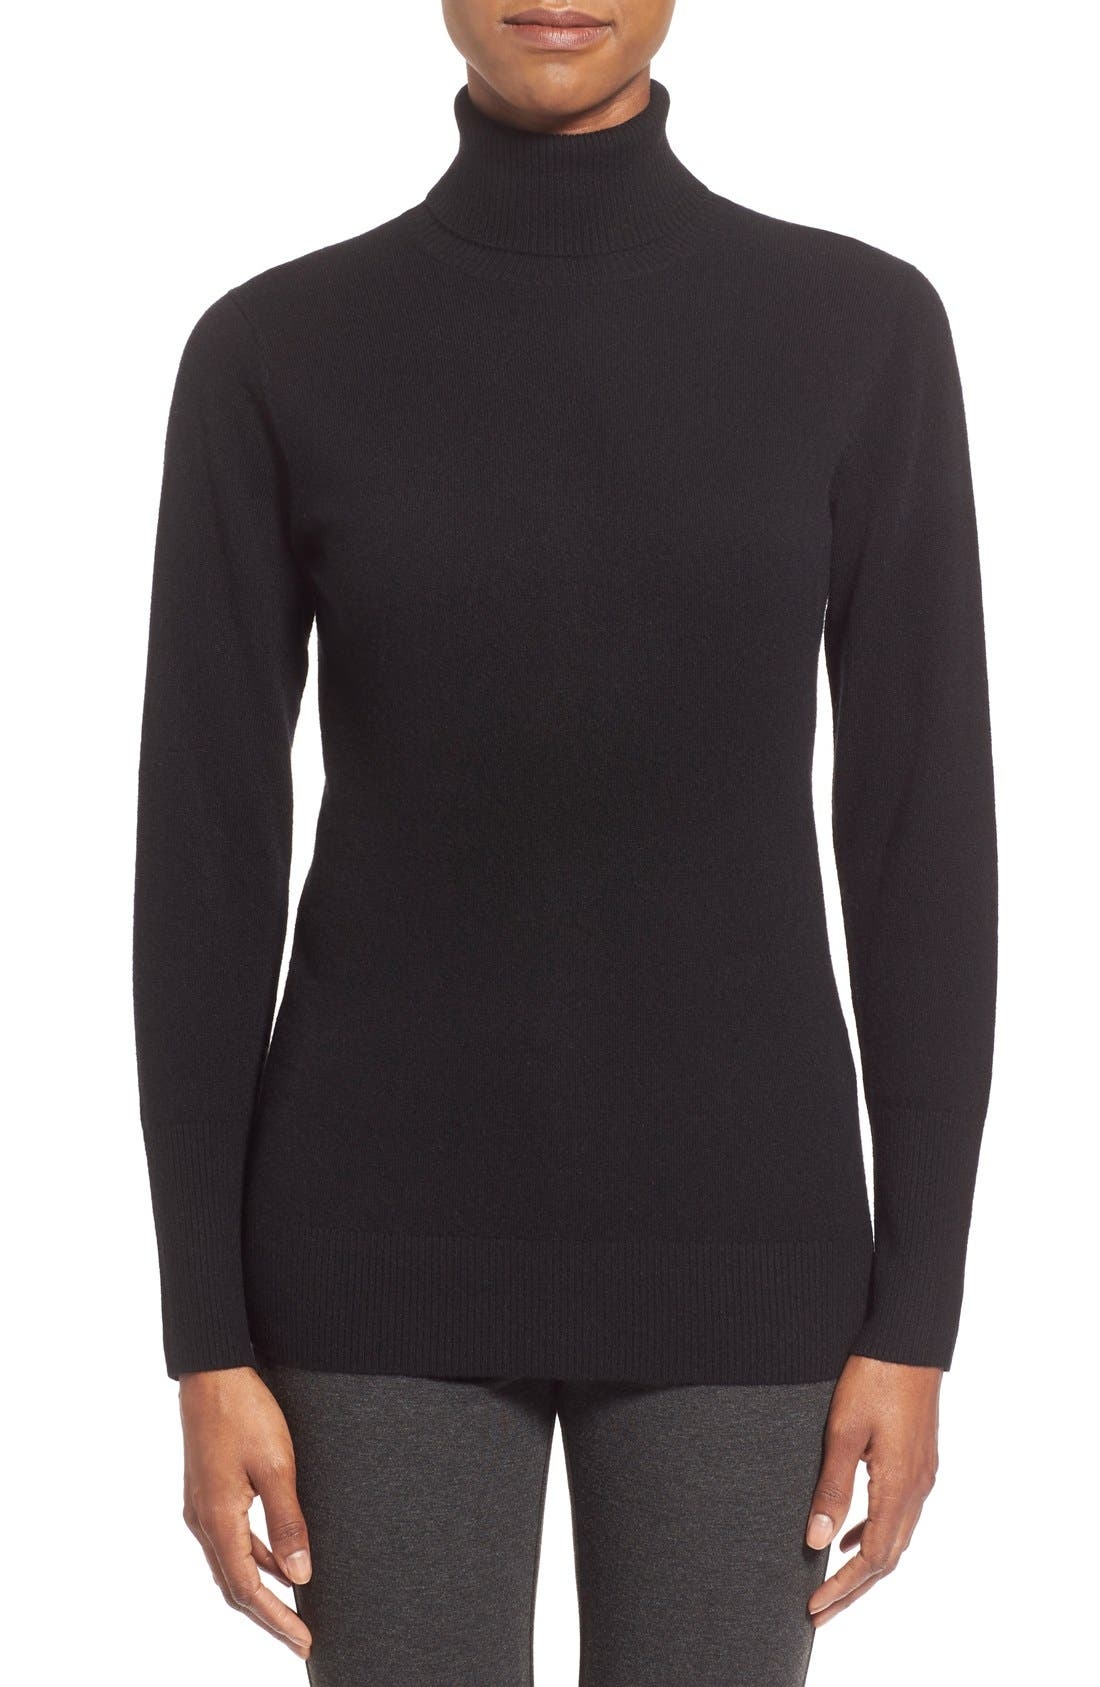 NORDSTROM COLLECTION,                             Cashmere Turtleneck Sweater,                             Main thumbnail 1, color,                             001